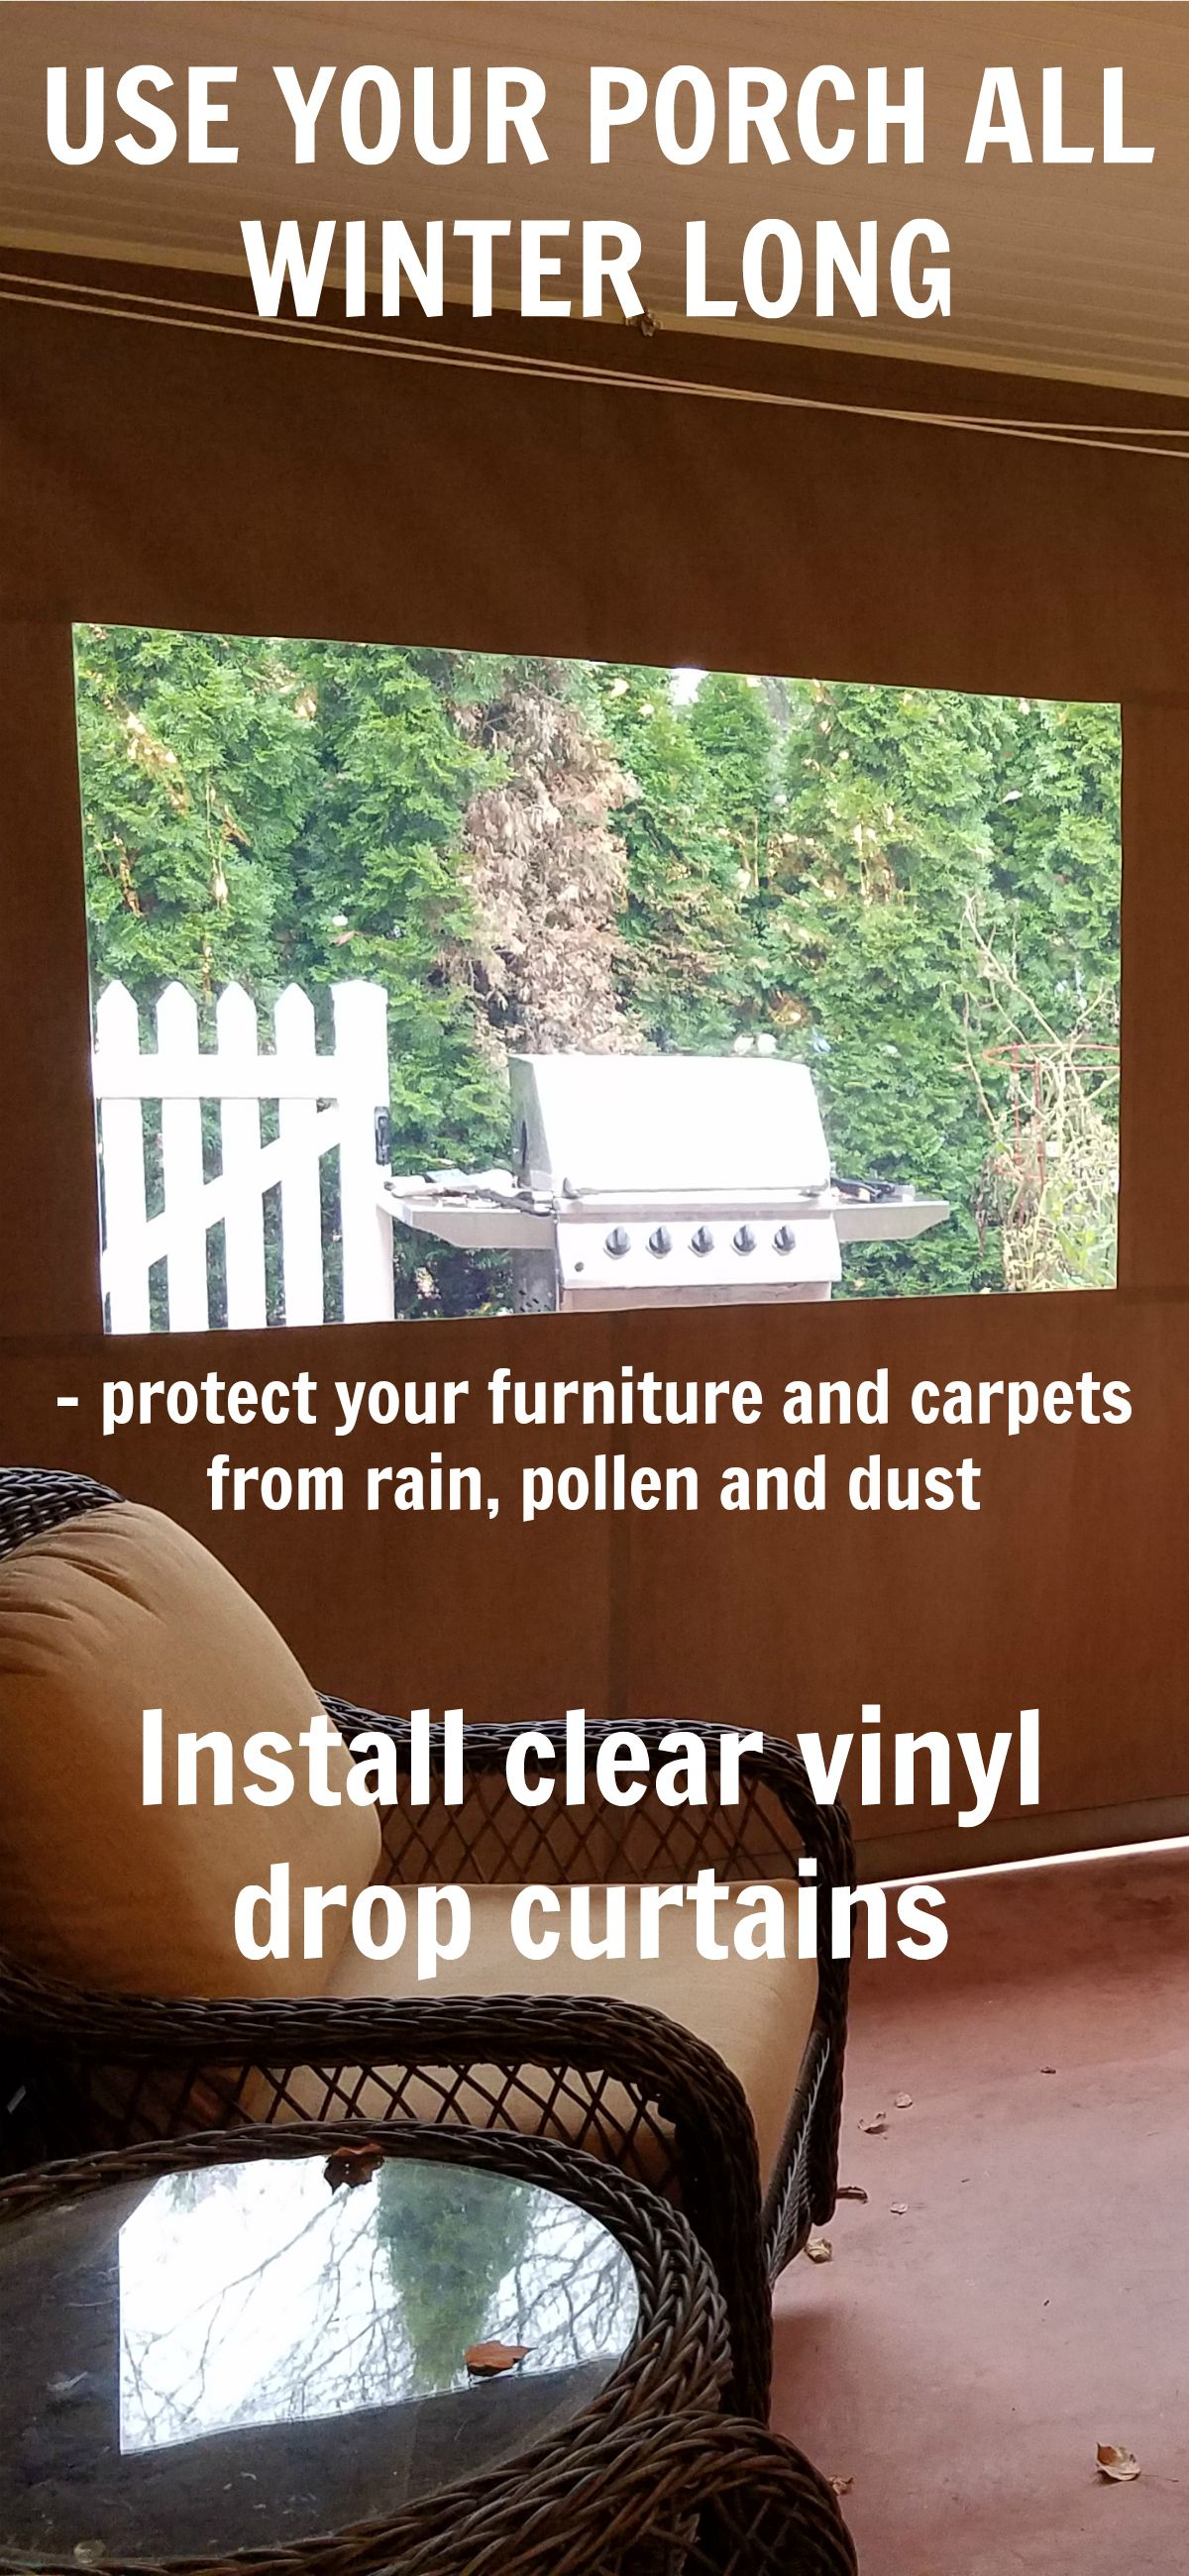 Diy We Can Ship The Curtains To You With All Needed Hardware For